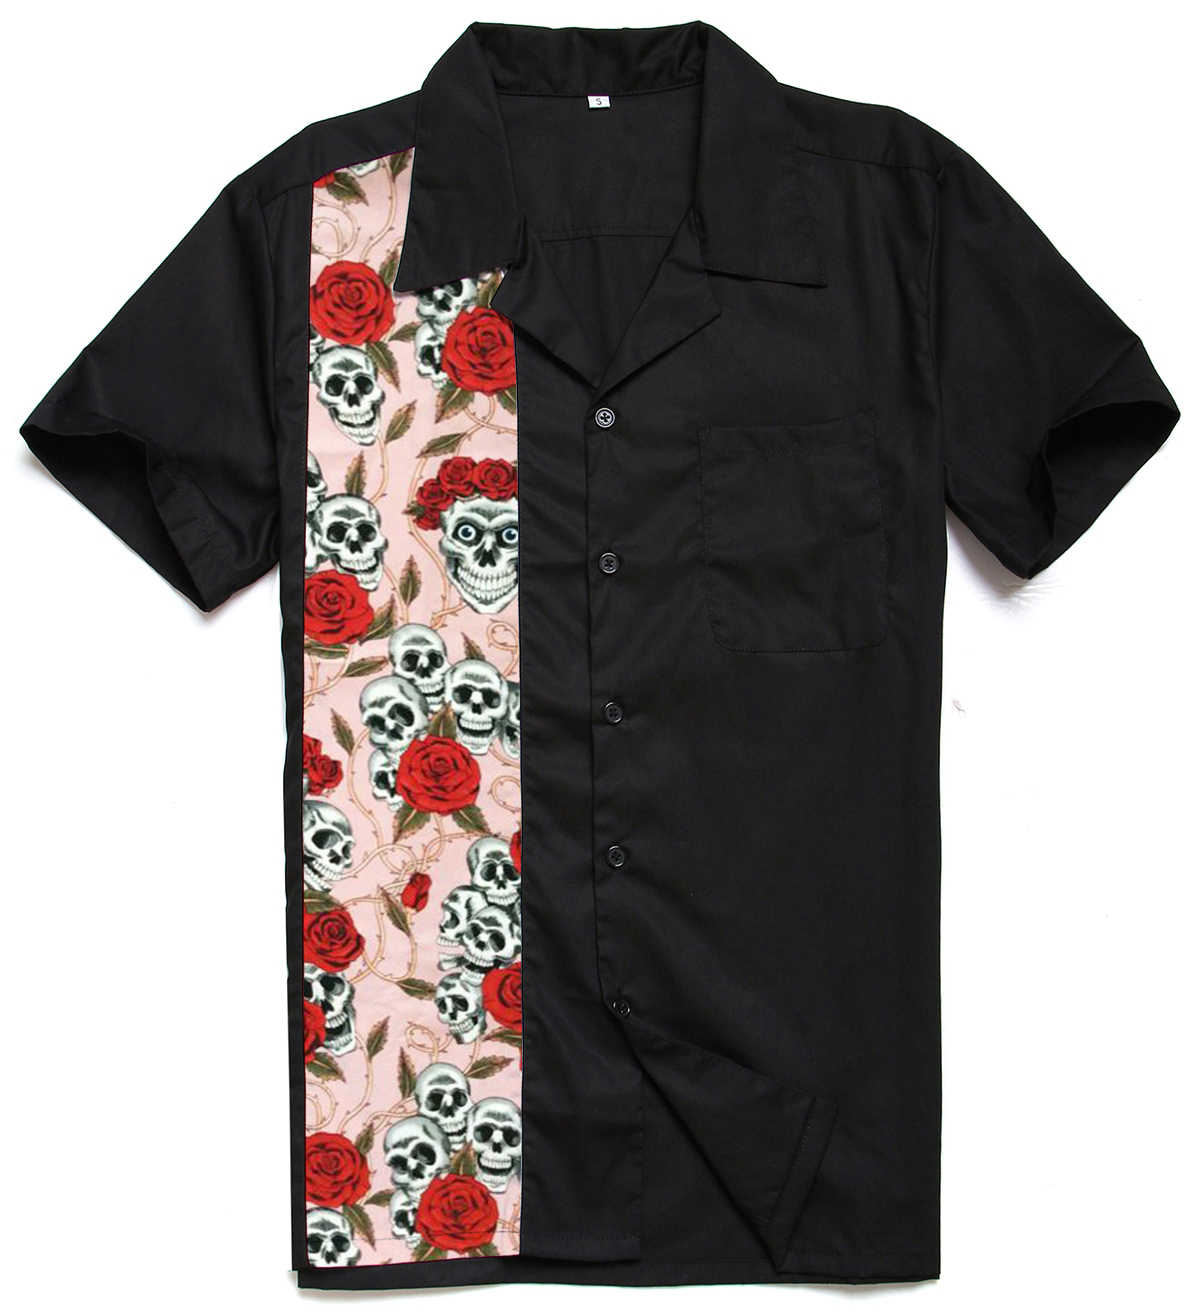 f5ab4bee7c88 Wholesale Male Red Rose Skull Short Sleeve Button Up Plus Size Tops  Rockabilly Vintage 50s Club